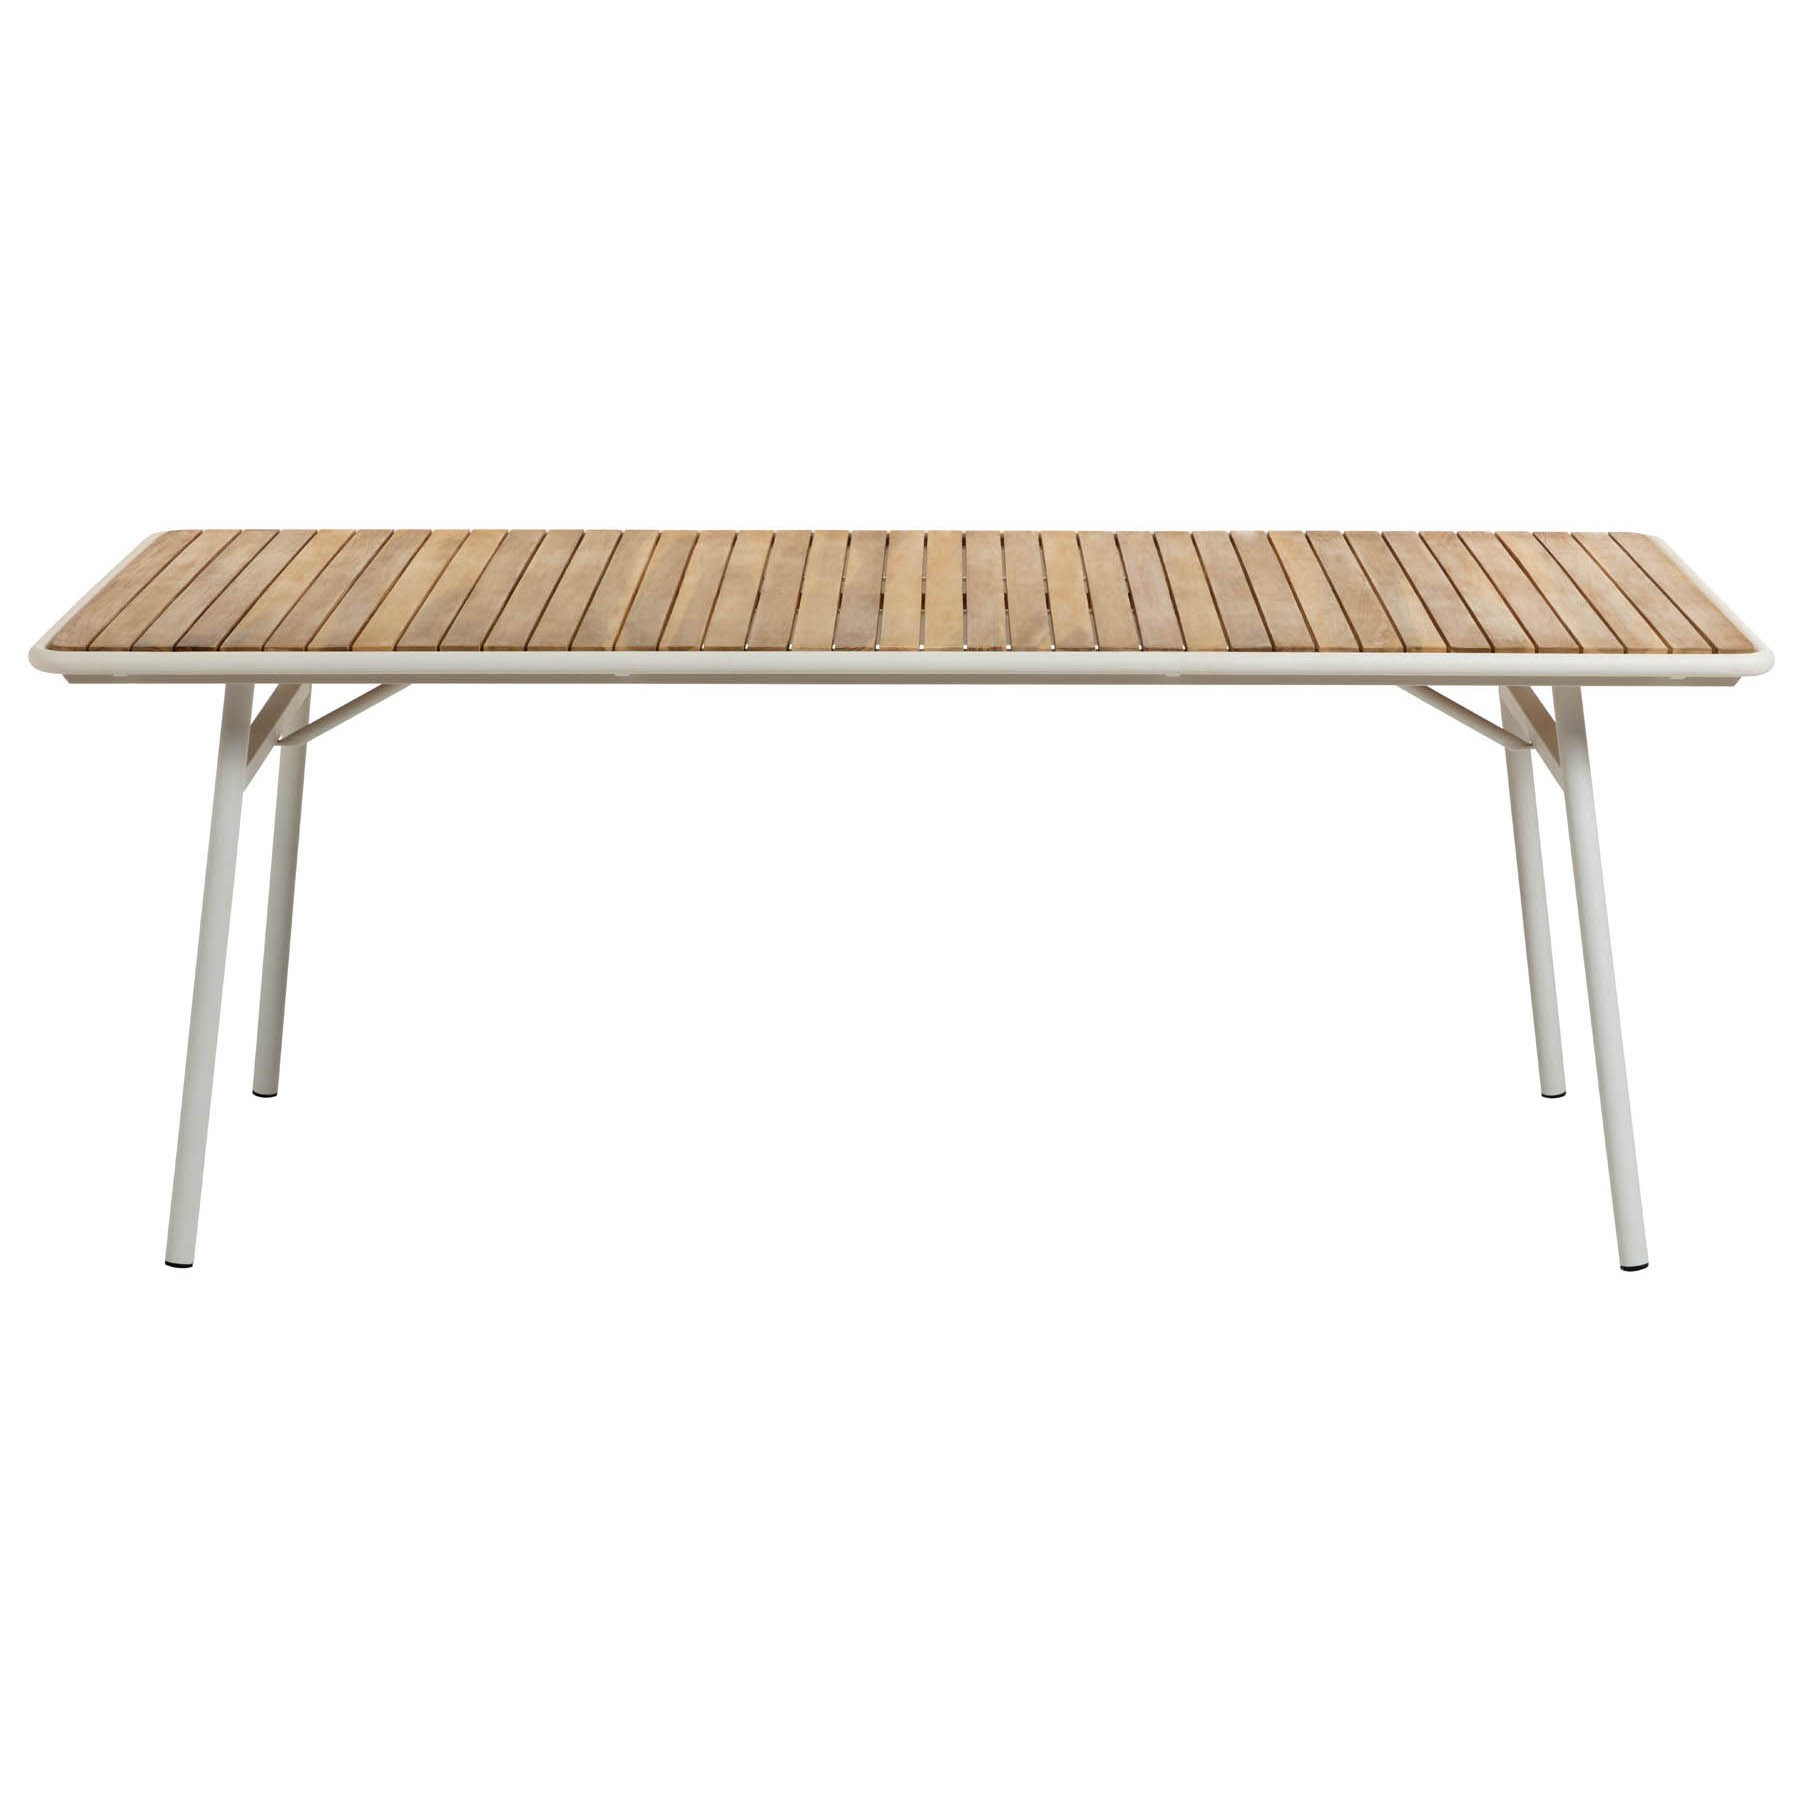 Aro Acacia Timber & Steel Alresco Dining Table, 160cm